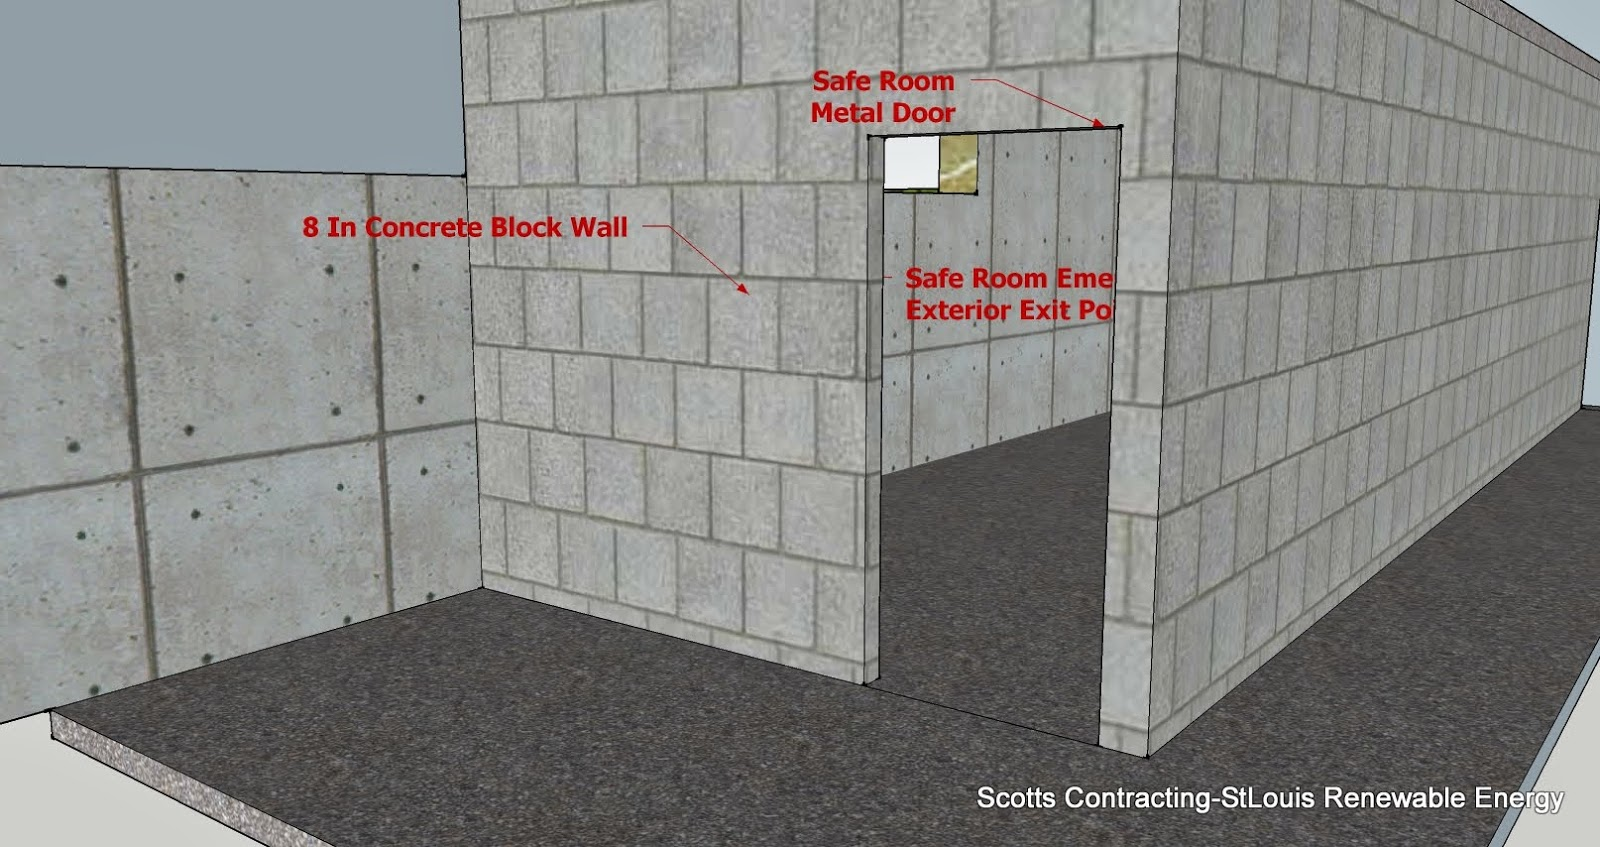 Safe room design st louis renewable energy scotts Safe room